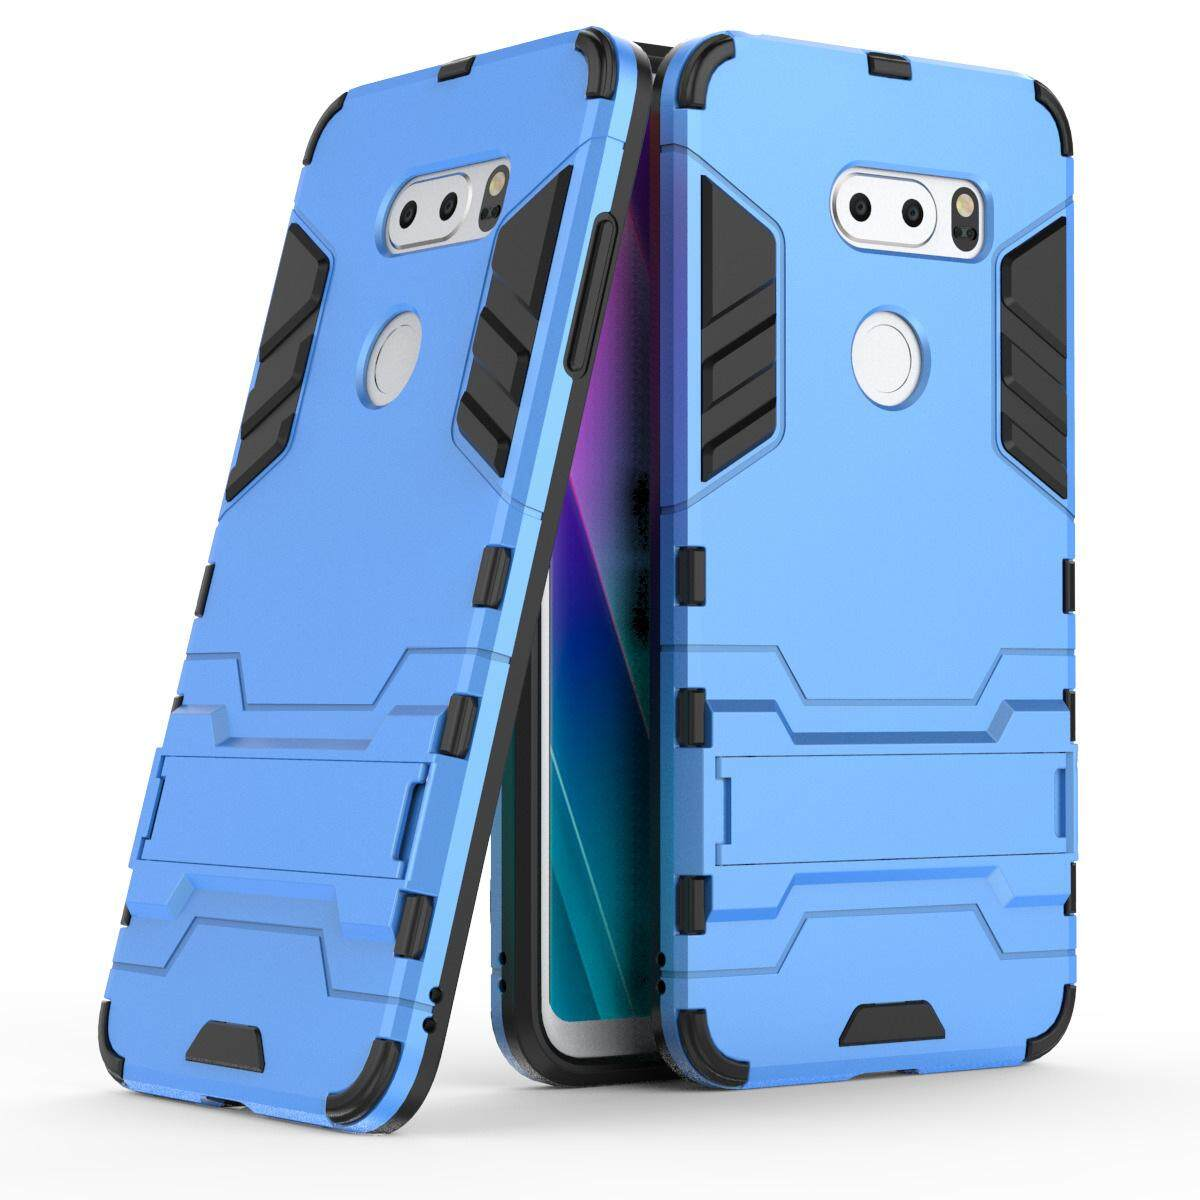 Hình ảnh for LG V30S Case 2in1 PC+TPU Hybrid Slim Back Case Ultra Thin Armor Cover, with Kickstand Holder, Glossy, Minimalist, Casual